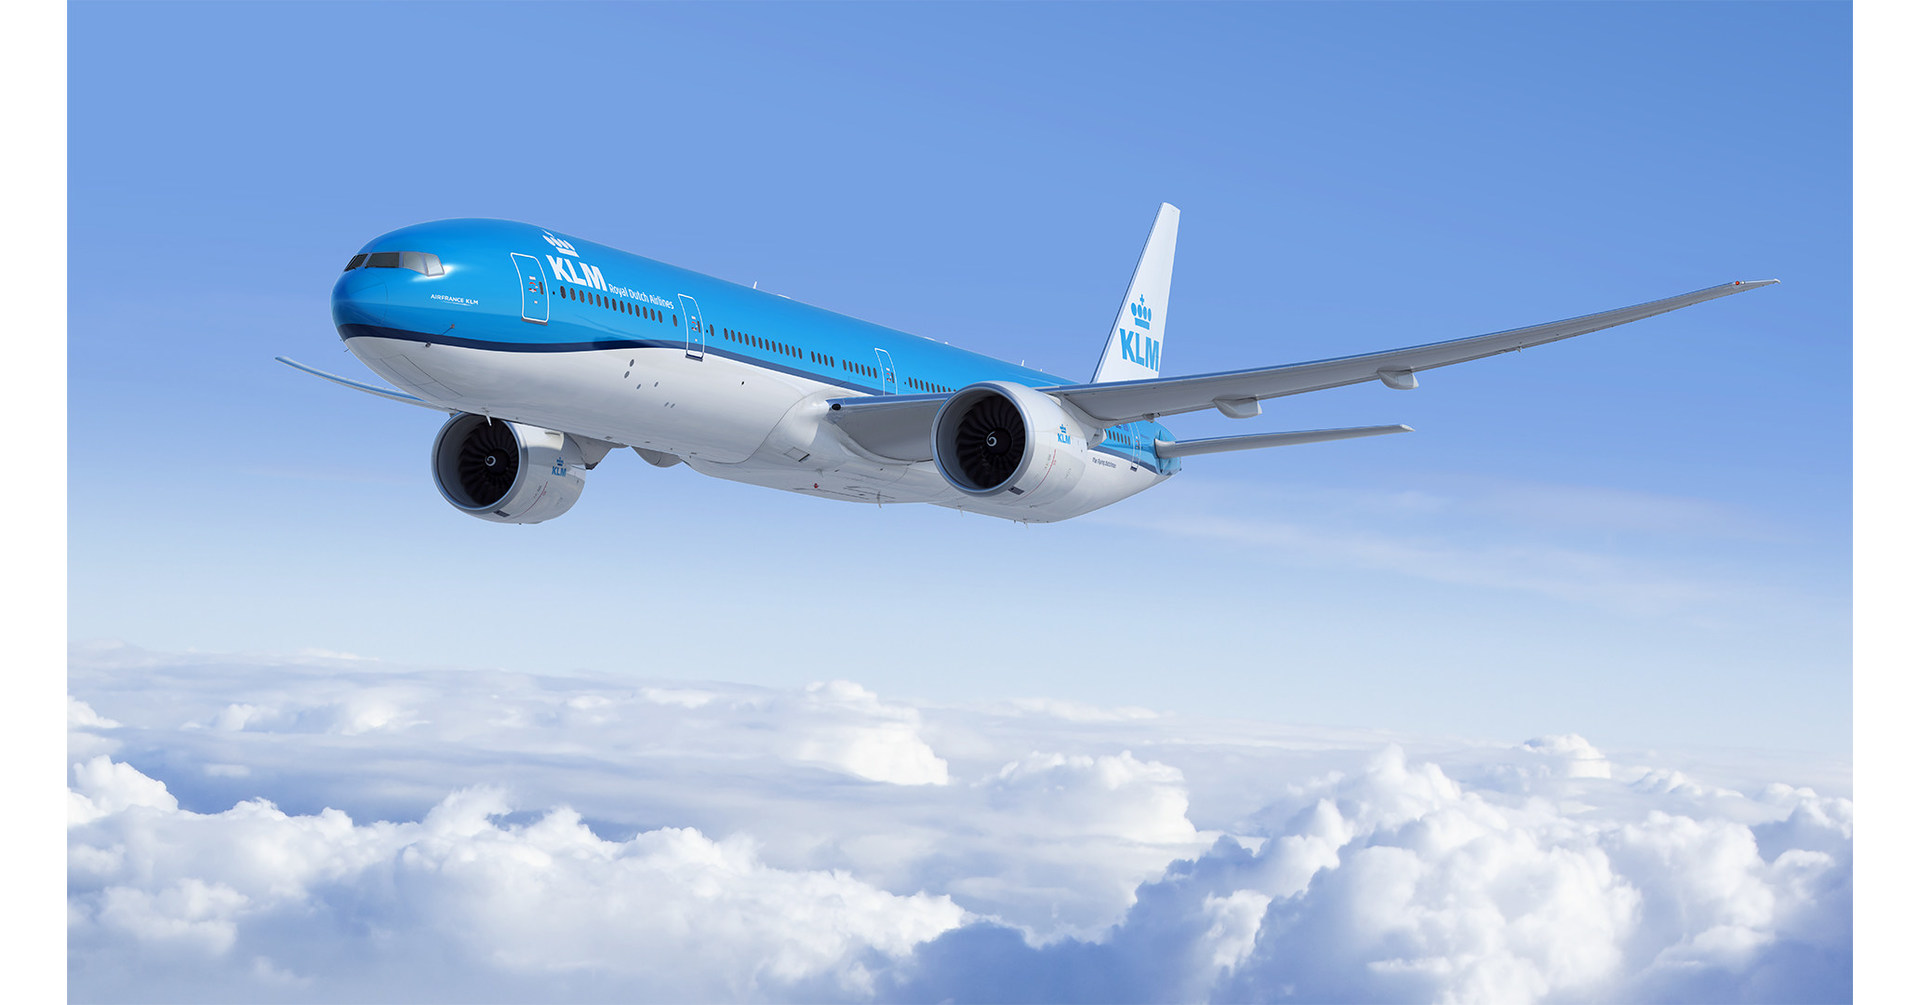 Boeing, KLM Announce Order for Two 777 Jets - Sep 2, 2019